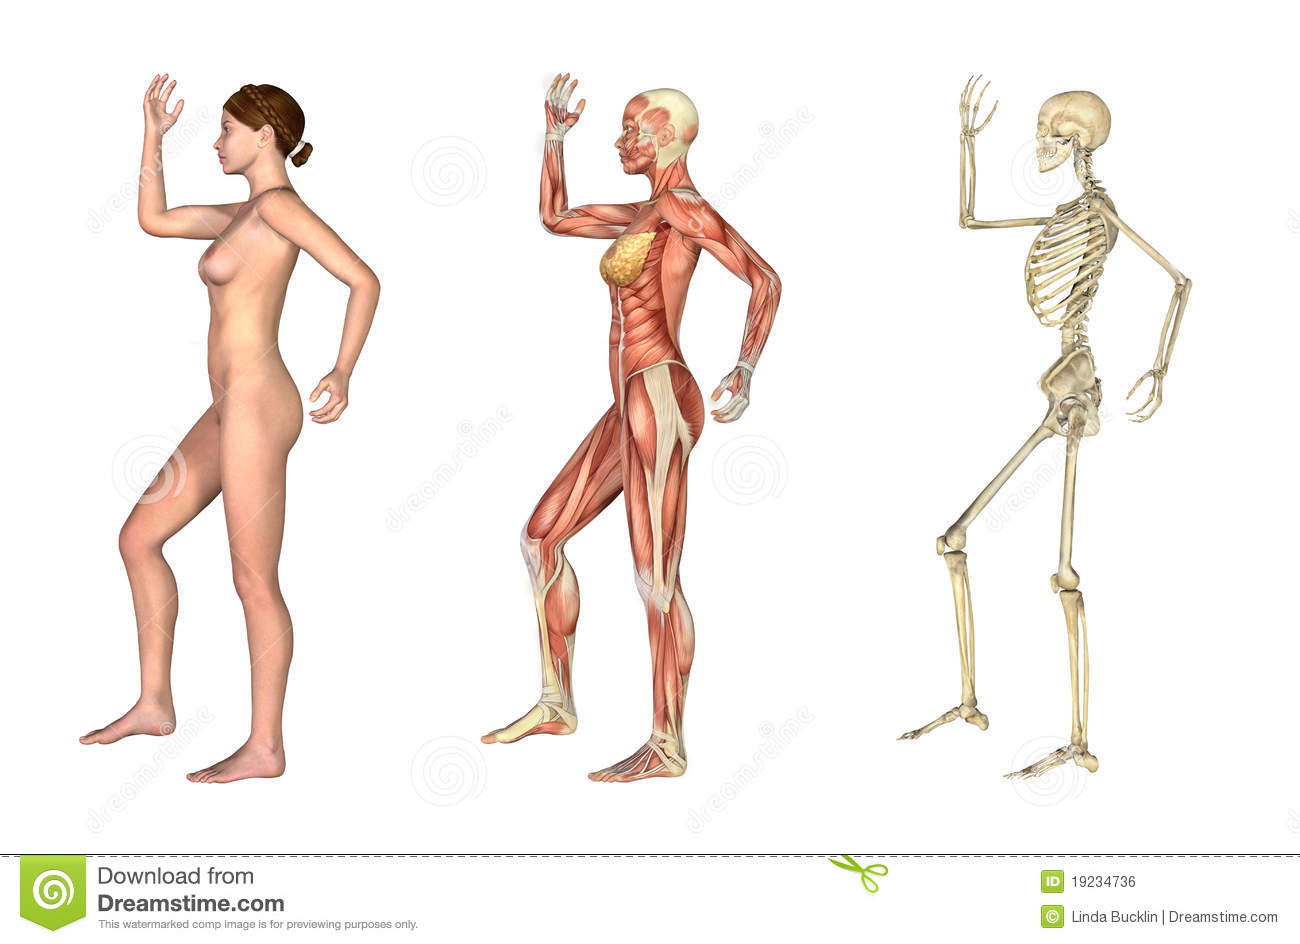 hight resolution of a set of anatomical overlays depicting the side view of a woman an arm and leg bent these images will line up exactly and can be used to study anatomy